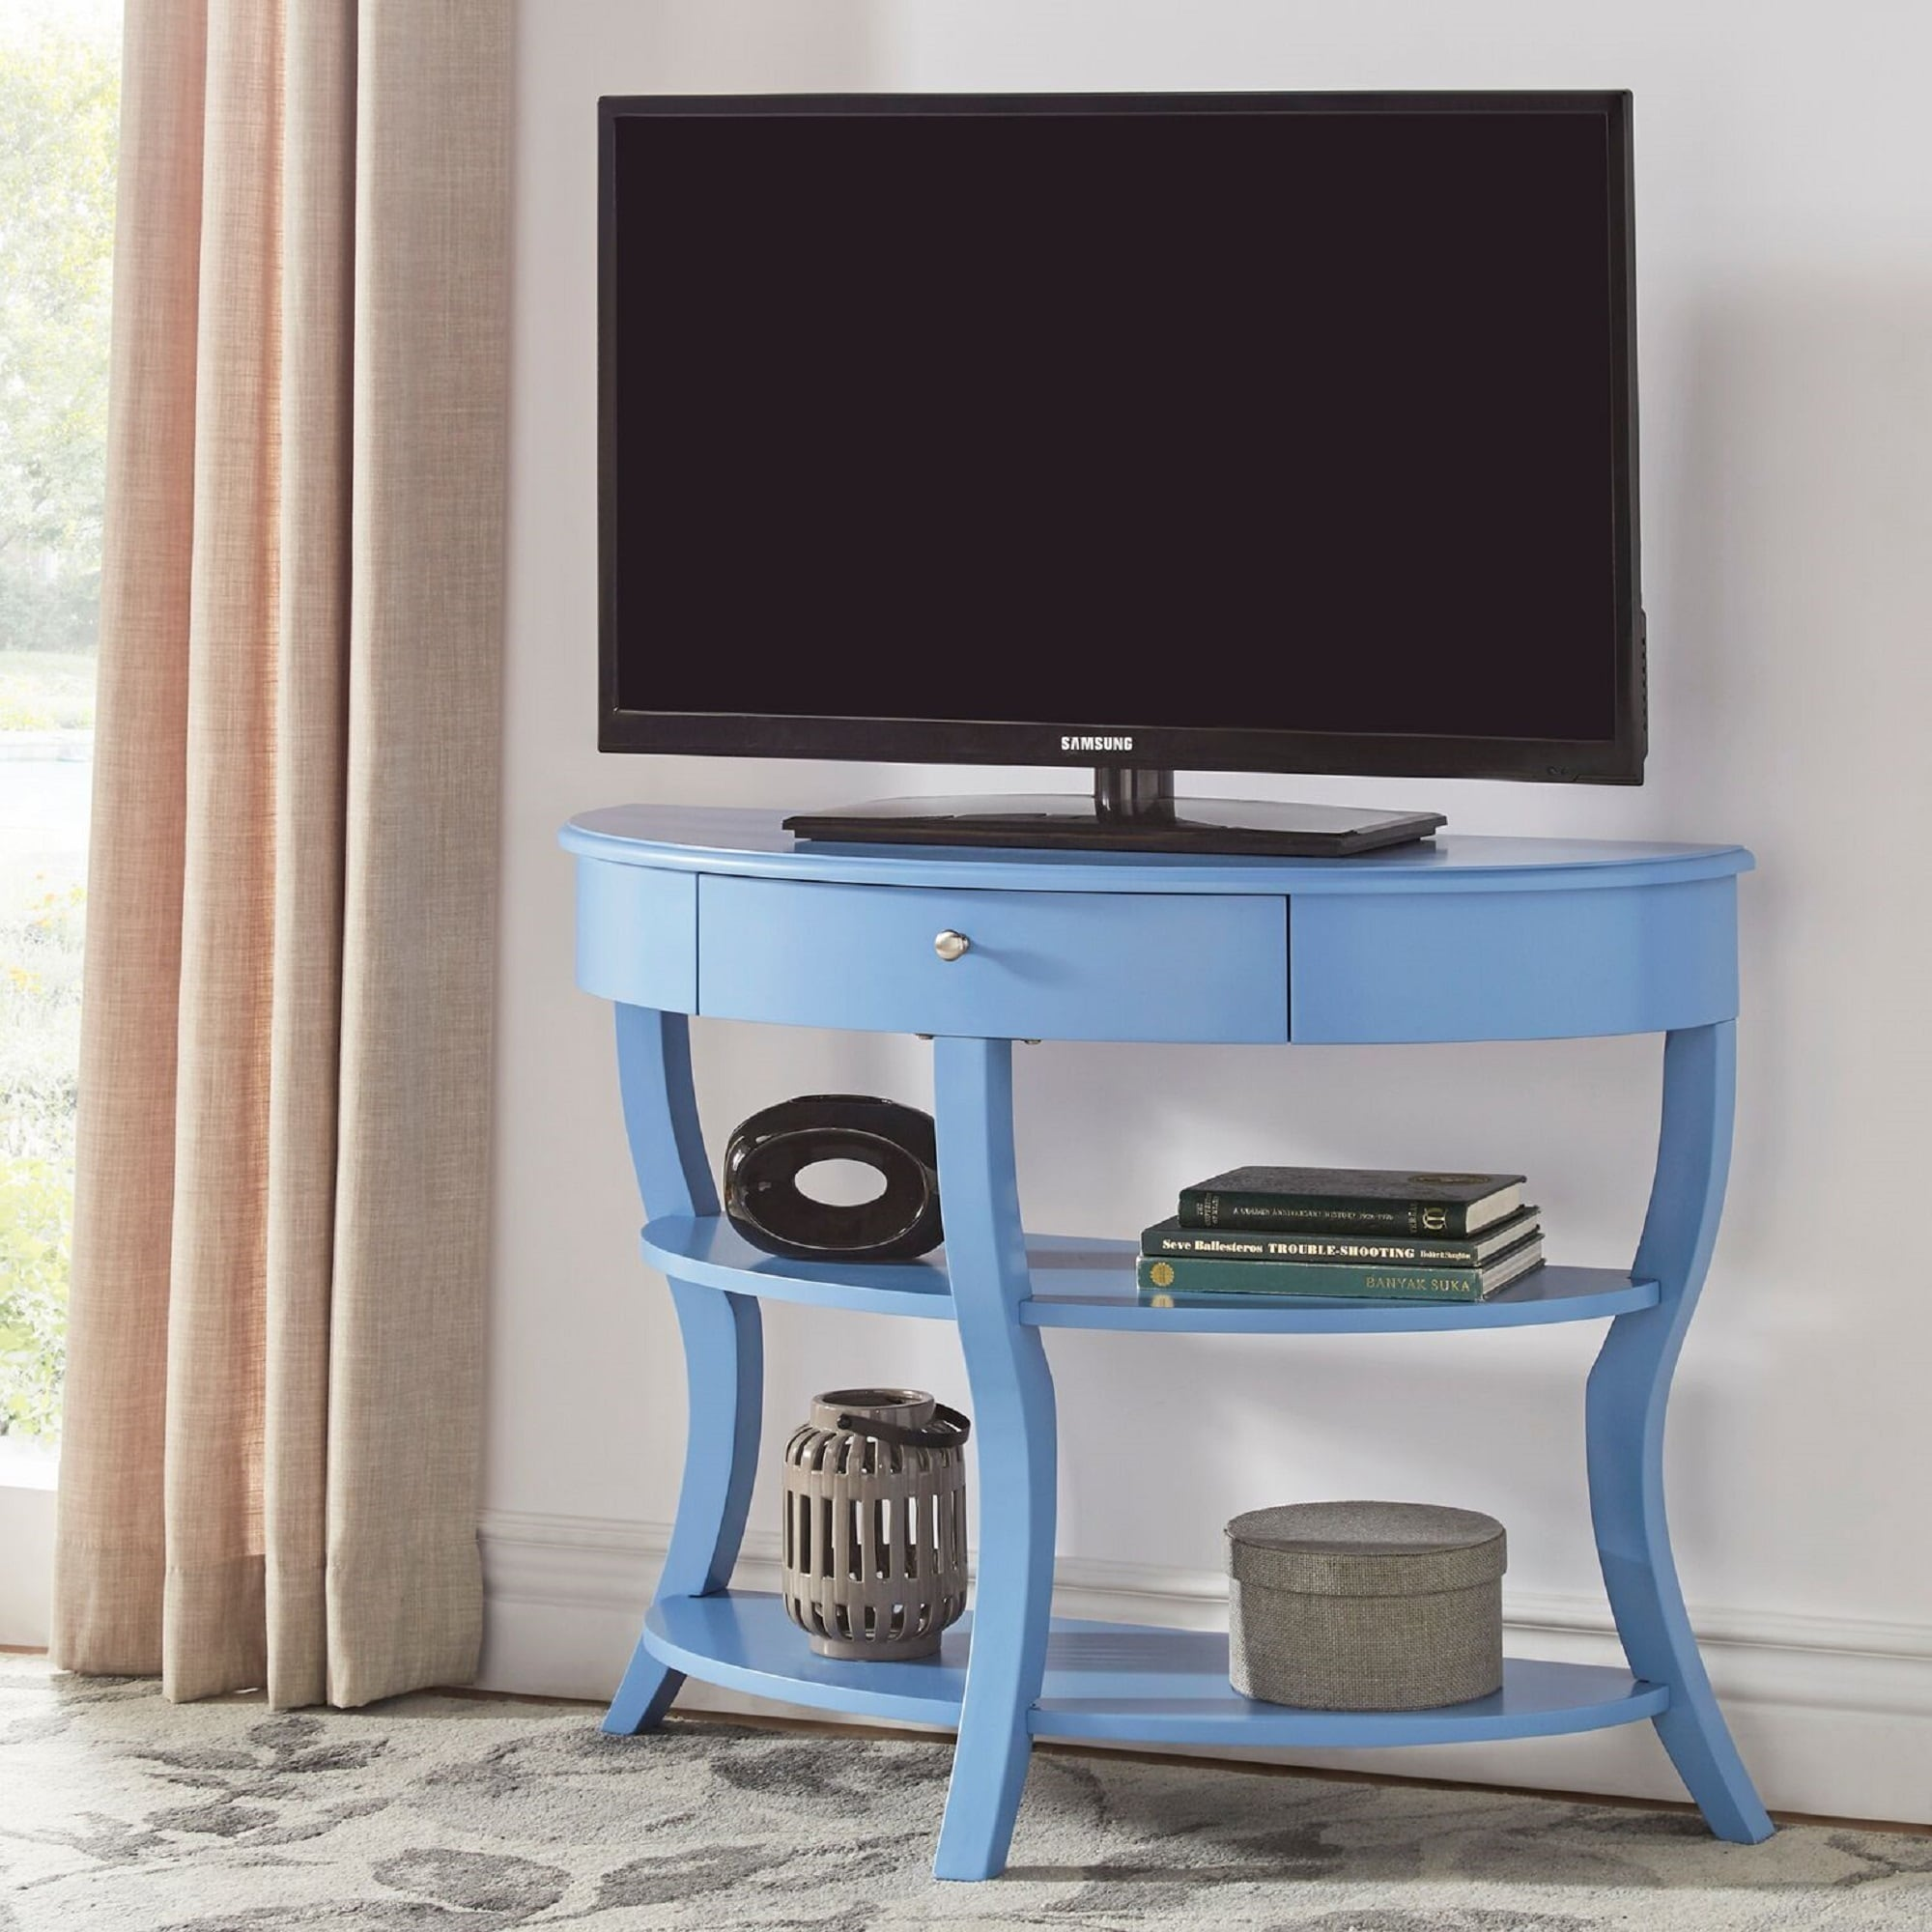 Burkhardt Rounded 1 Drawer Console Table TV Stand